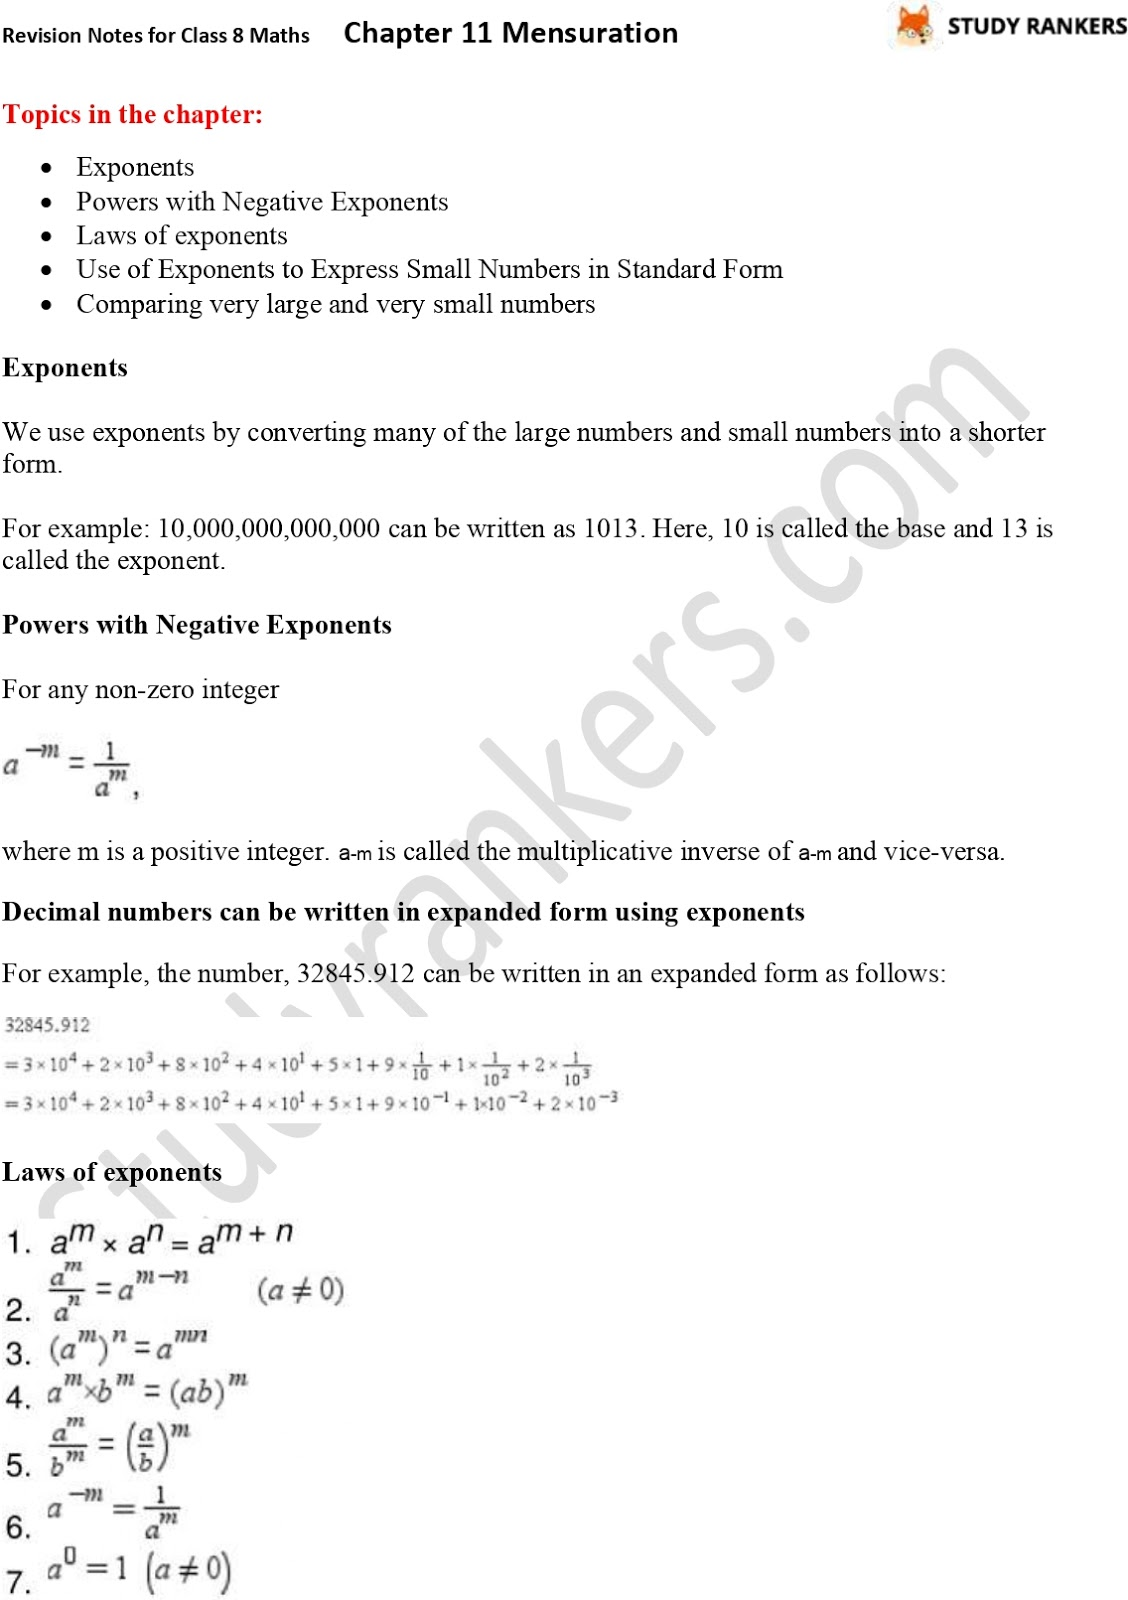 CBSE Revision Notes for Class 8 Chapter 12 Exponents and Powers Part 1